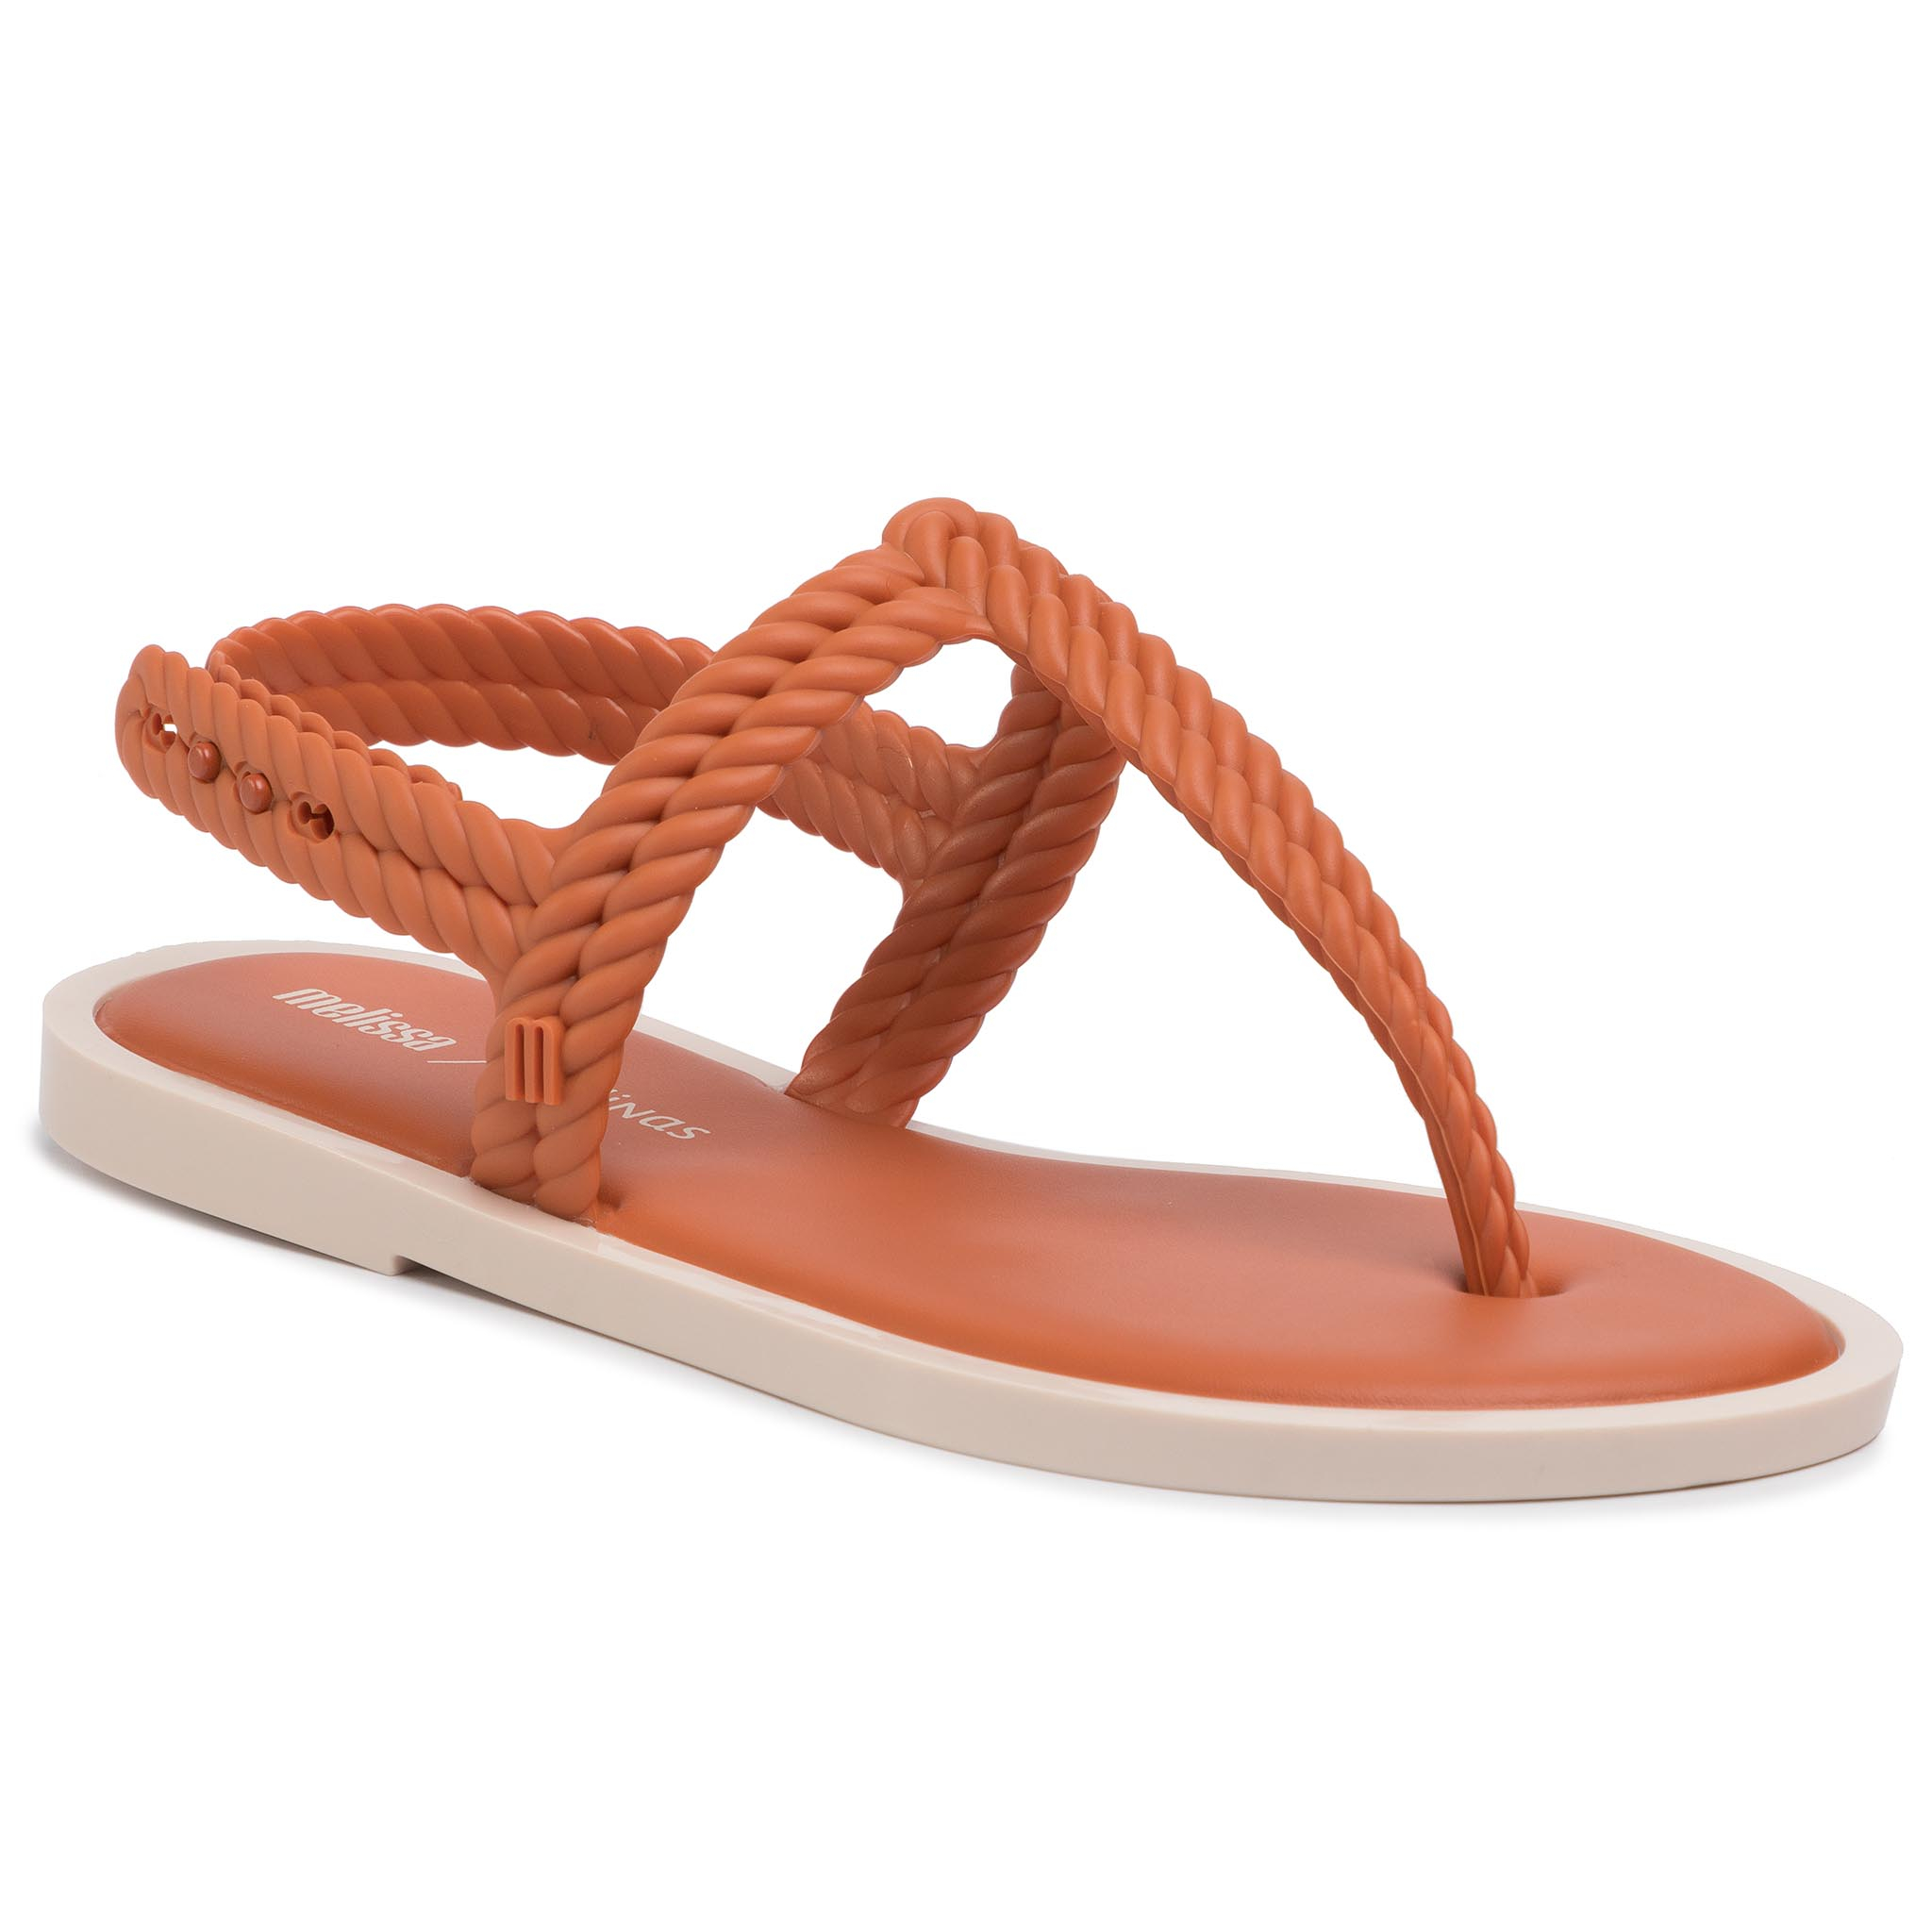 Sandale Melissa - Flash Sandal + Salinas 32630 Orange/Beige 52050 imagine epantofi.ro 2021